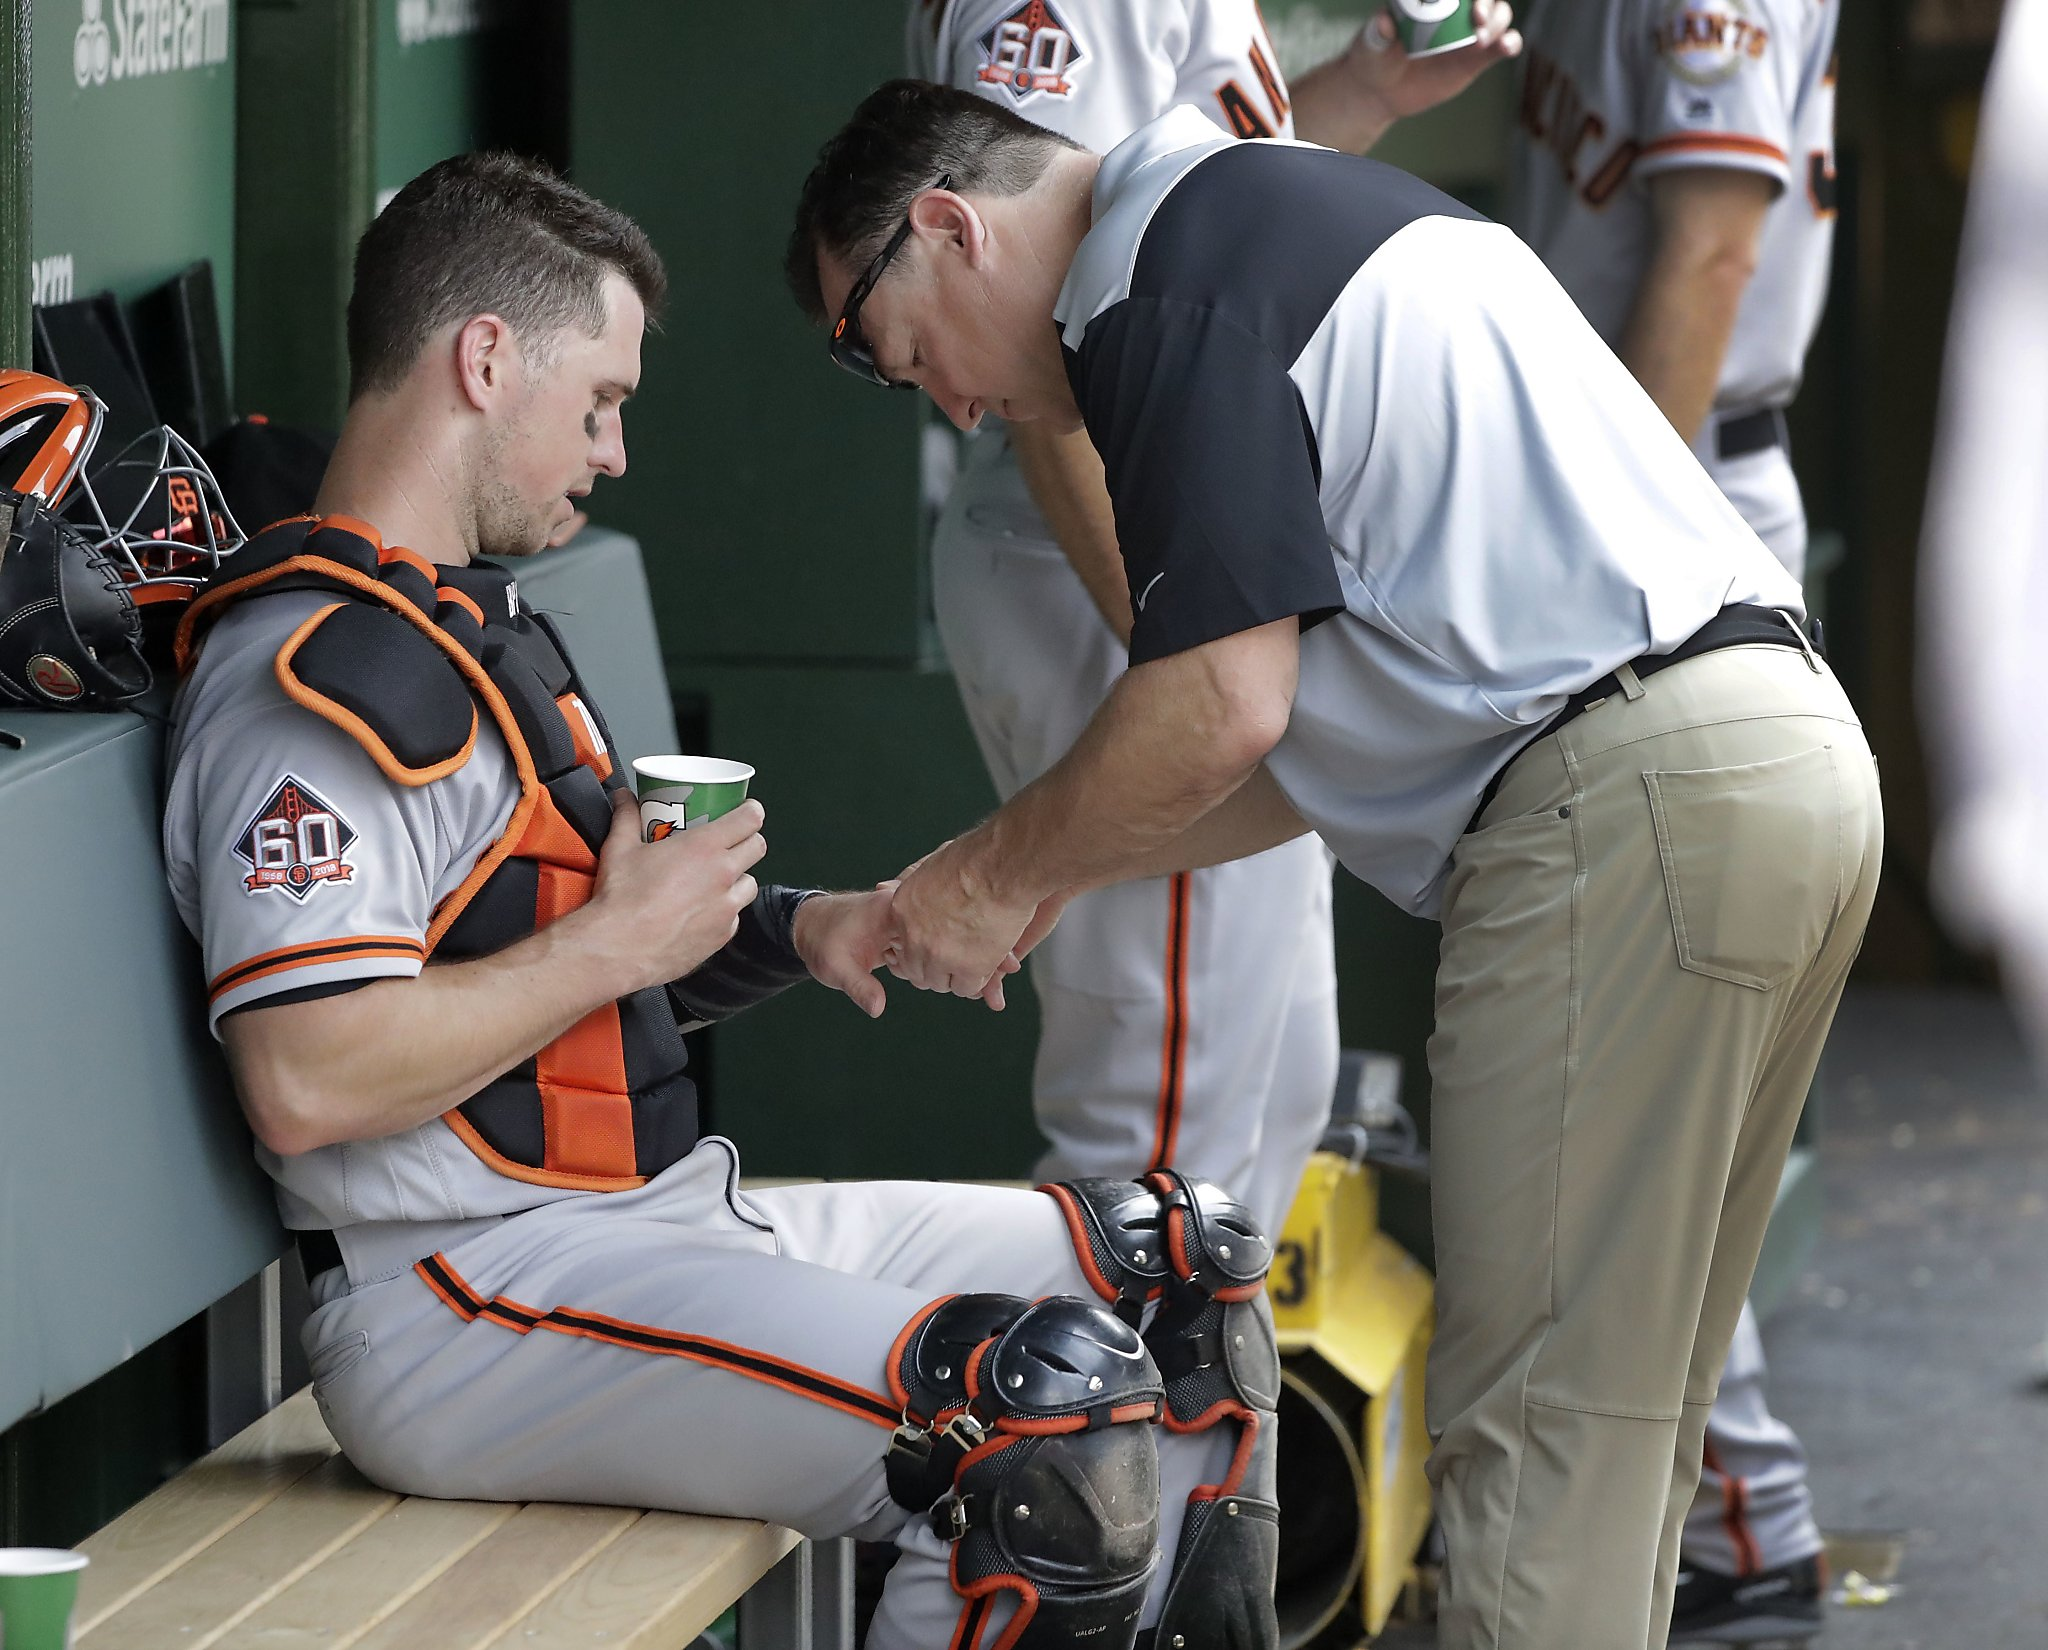 cd9f8328a612c Giants  Buster Posey out of lineup with hip soreness - SFGate